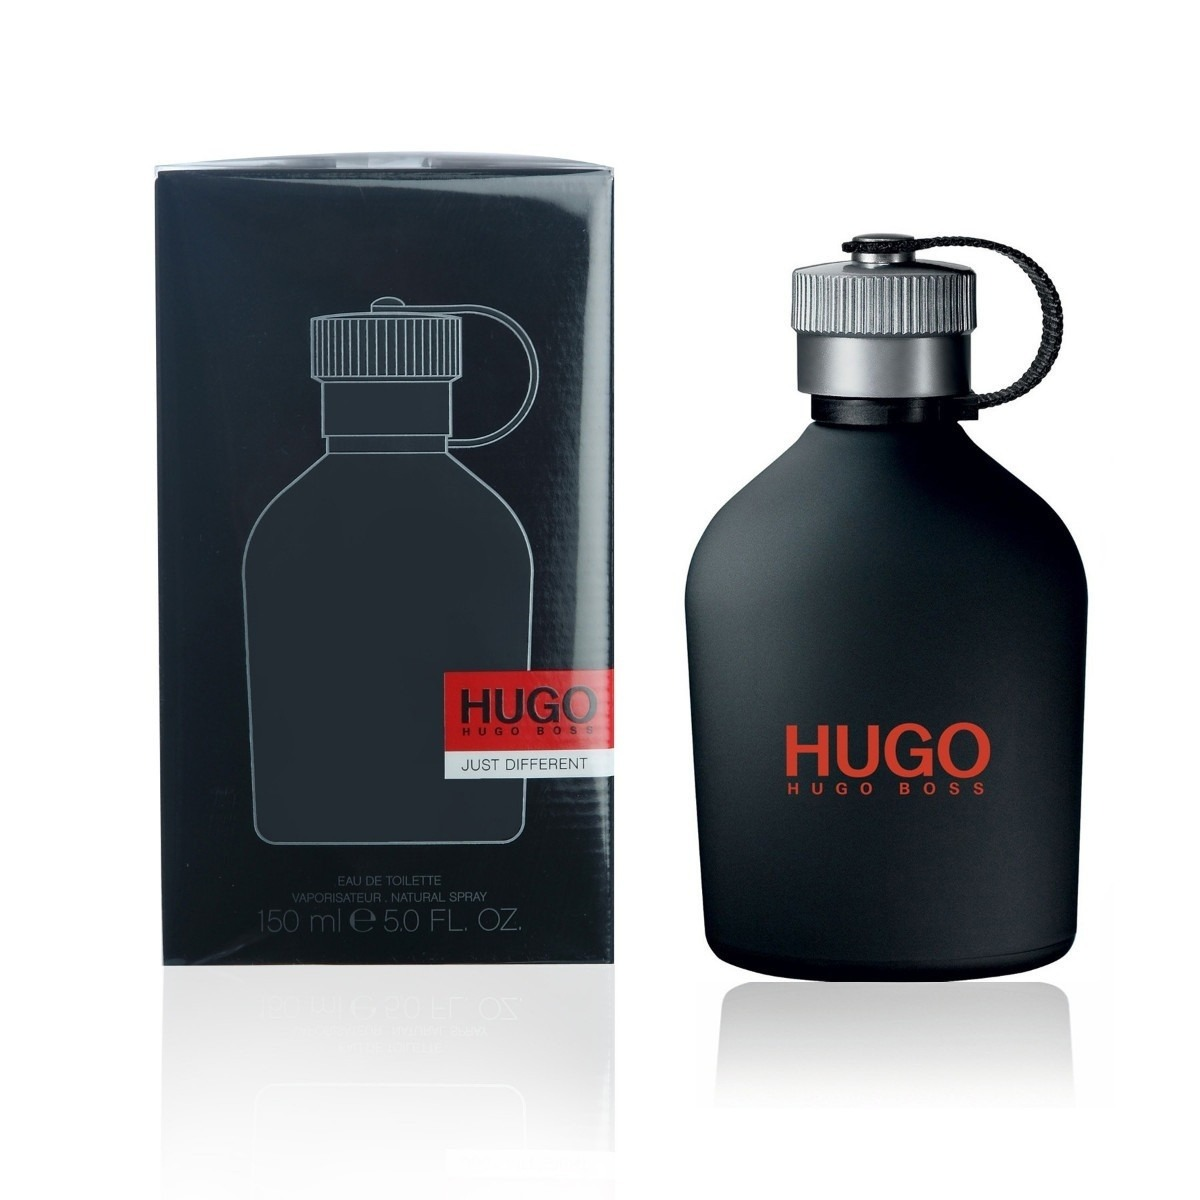 perfume hugo just different hugo boss caballero 150ml kuma en mercado libre. Black Bedroom Furniture Sets. Home Design Ideas